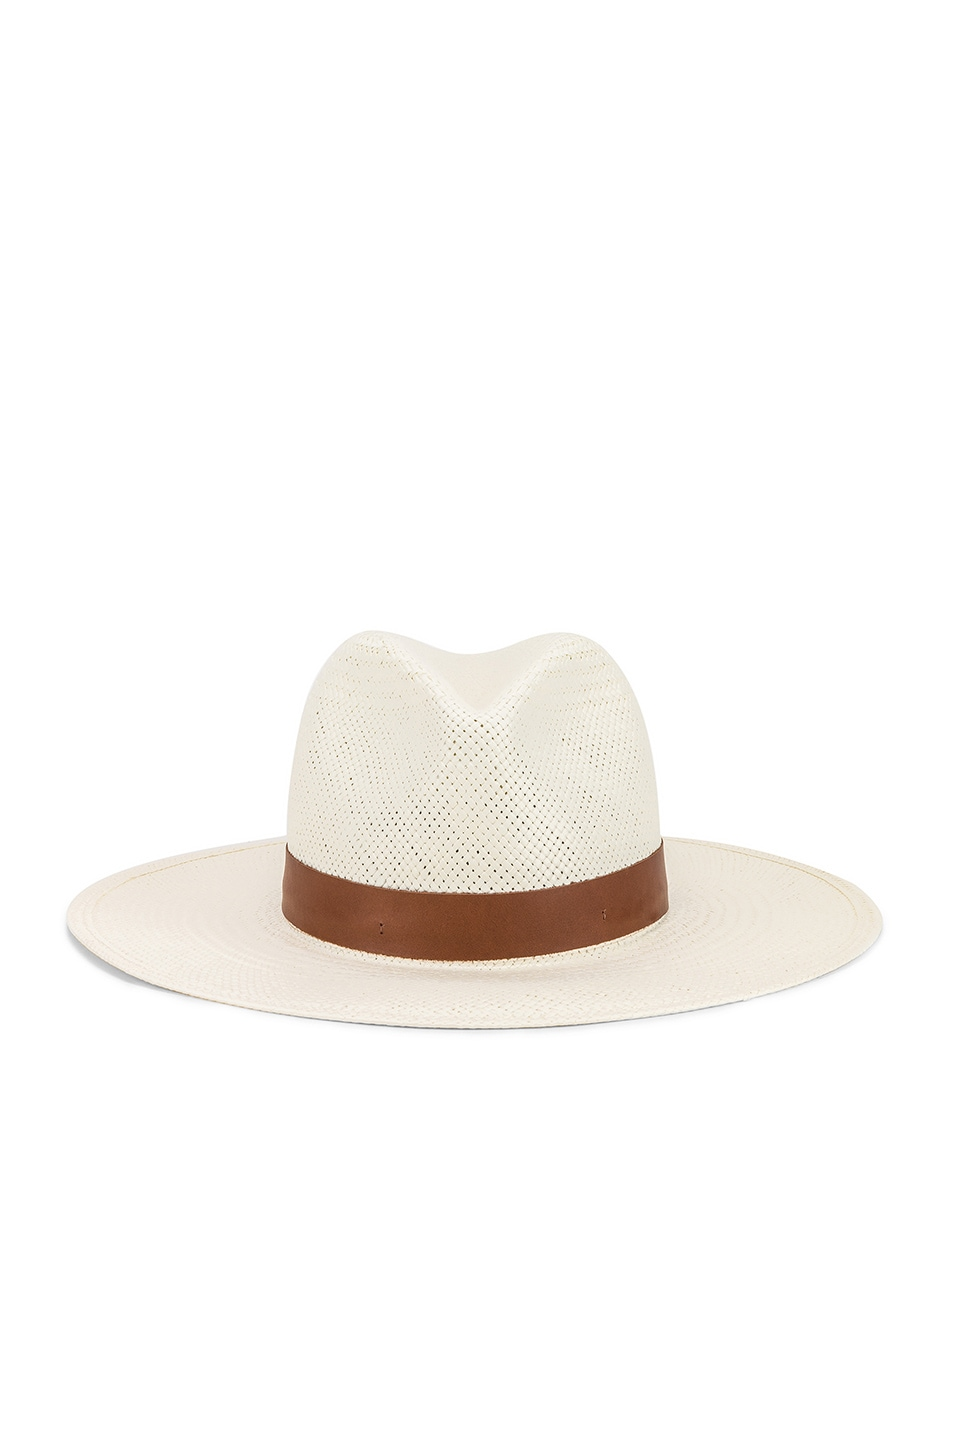 Janessa Leone Hats JANESSA LEONE MICHON PACKABLE HAT IN WHITE